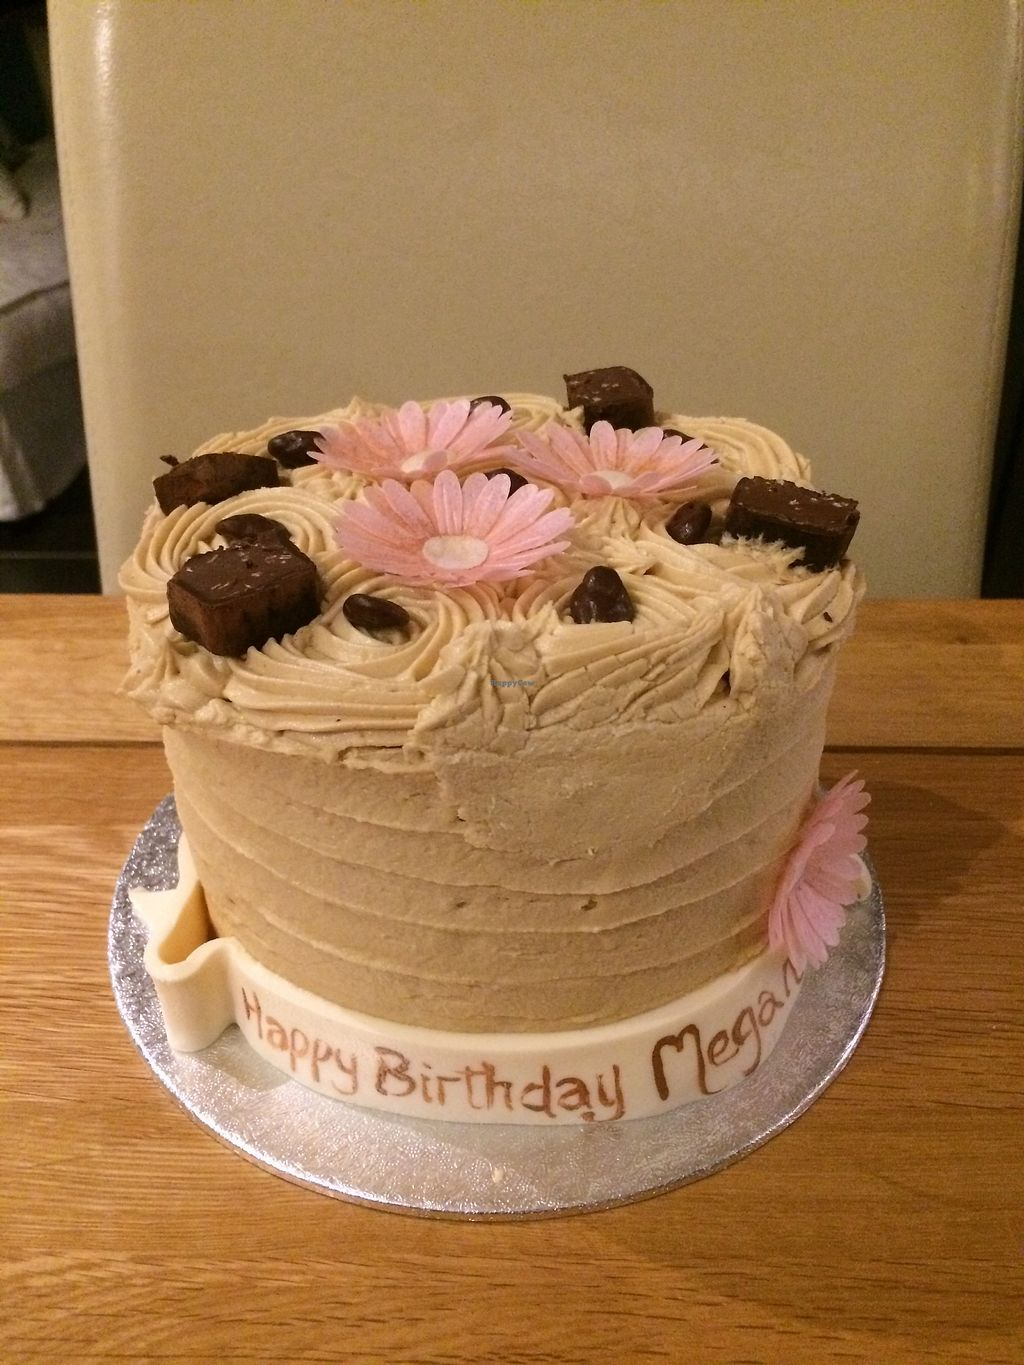 """Photo of The Exclusive Cake Shop & Vintage Tearoom   by <a href=""""/members/profile/Megsriley_82"""">Megsriley_82</a> <br/>Birthday Coffee cake  <br/> April 15, 2018  - <a href='/contact/abuse/image/71733/386312'>Report</a>"""